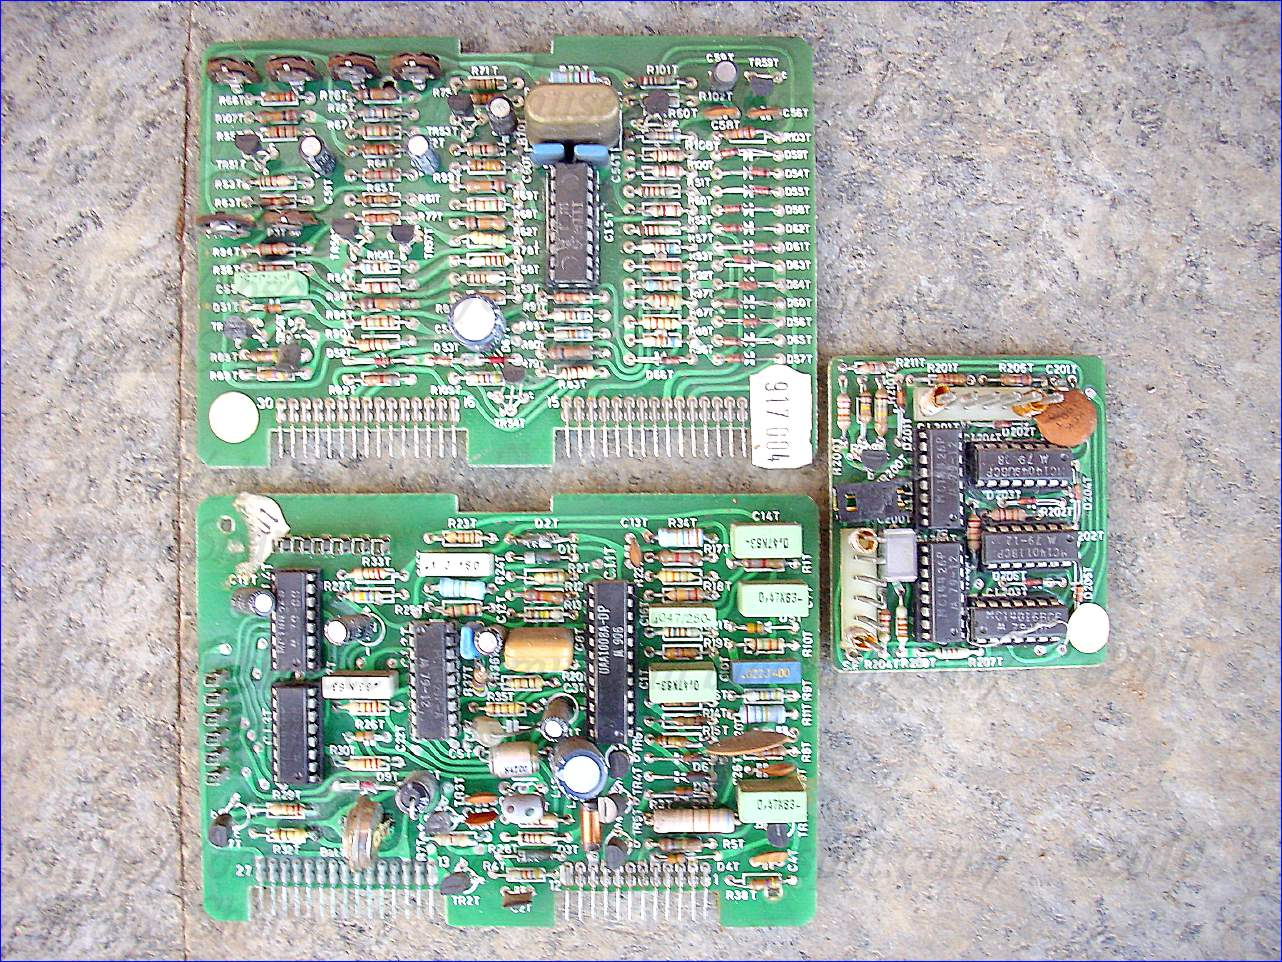 Obsolete Technology Tellye Emerson Mustang 26 Se Chassis Two Station Start Stop Wiring Allel Memory 15 And The Count Eg V Diagram A At Which Pulse 9a Was Generated Is Entered Into First Parallel In